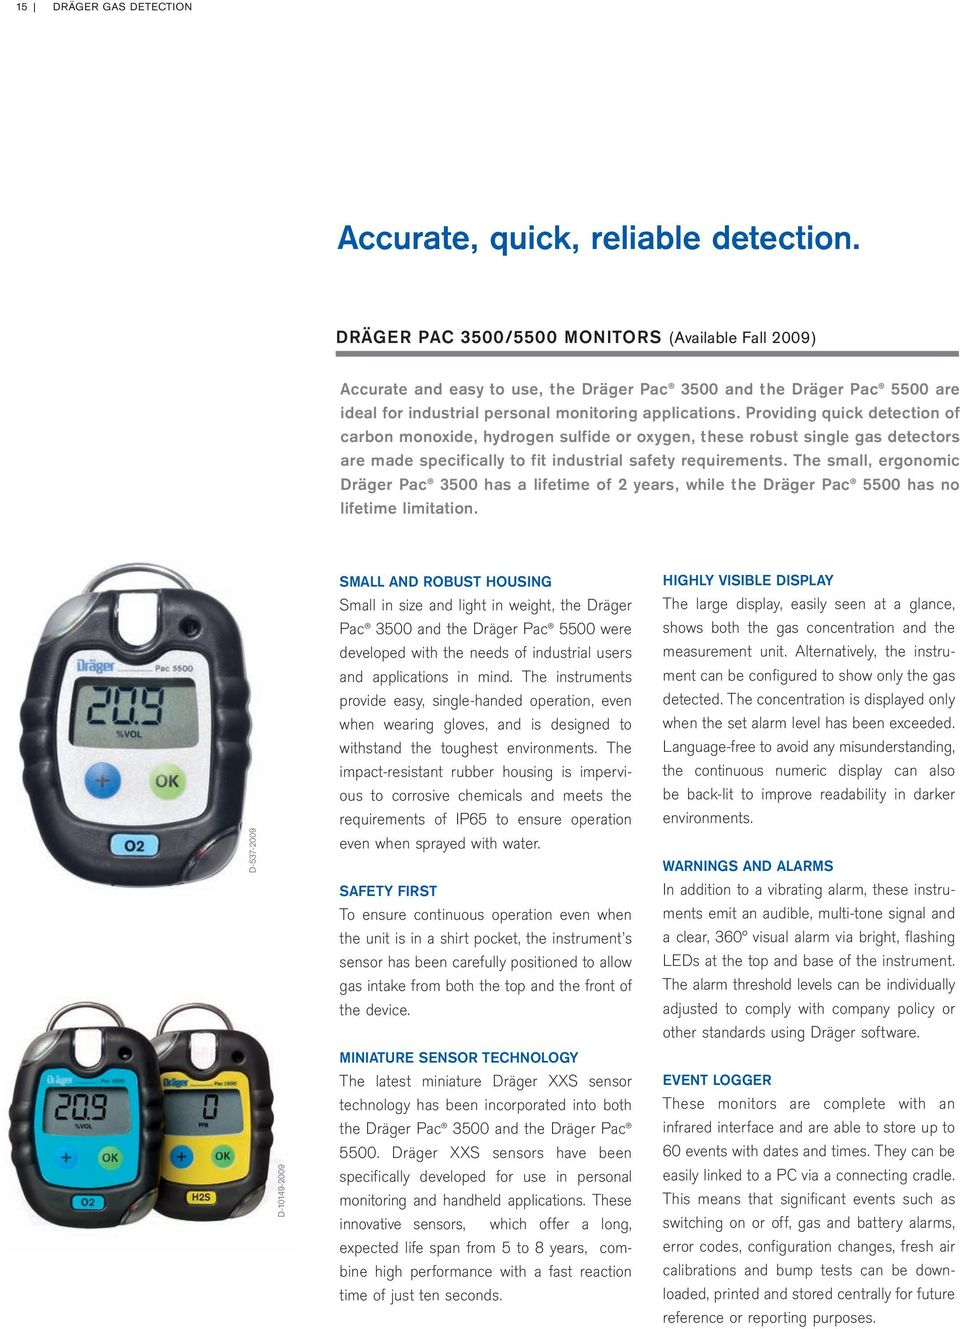 Providing quick detection of carbon monoxide, hydrogen sulfide or oxygen, these robust single gas detectors are made specifically to fit industrial safety requirements.